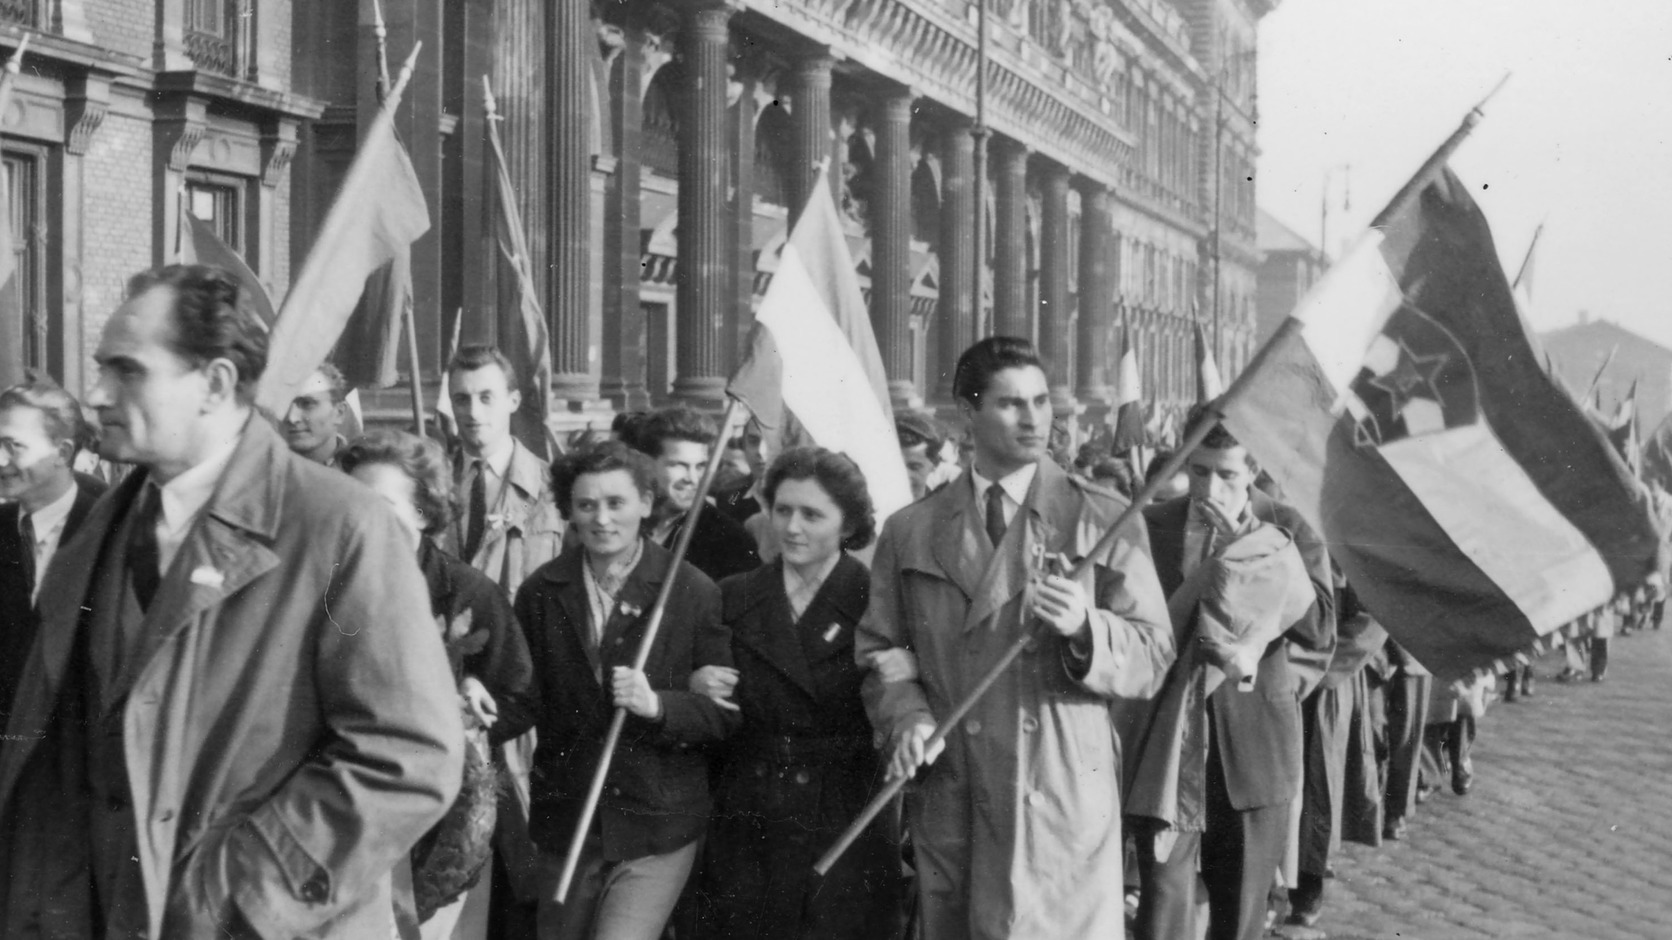 Video: Hungarian Holiday On 23 October - Remembering The 1956 Revolution